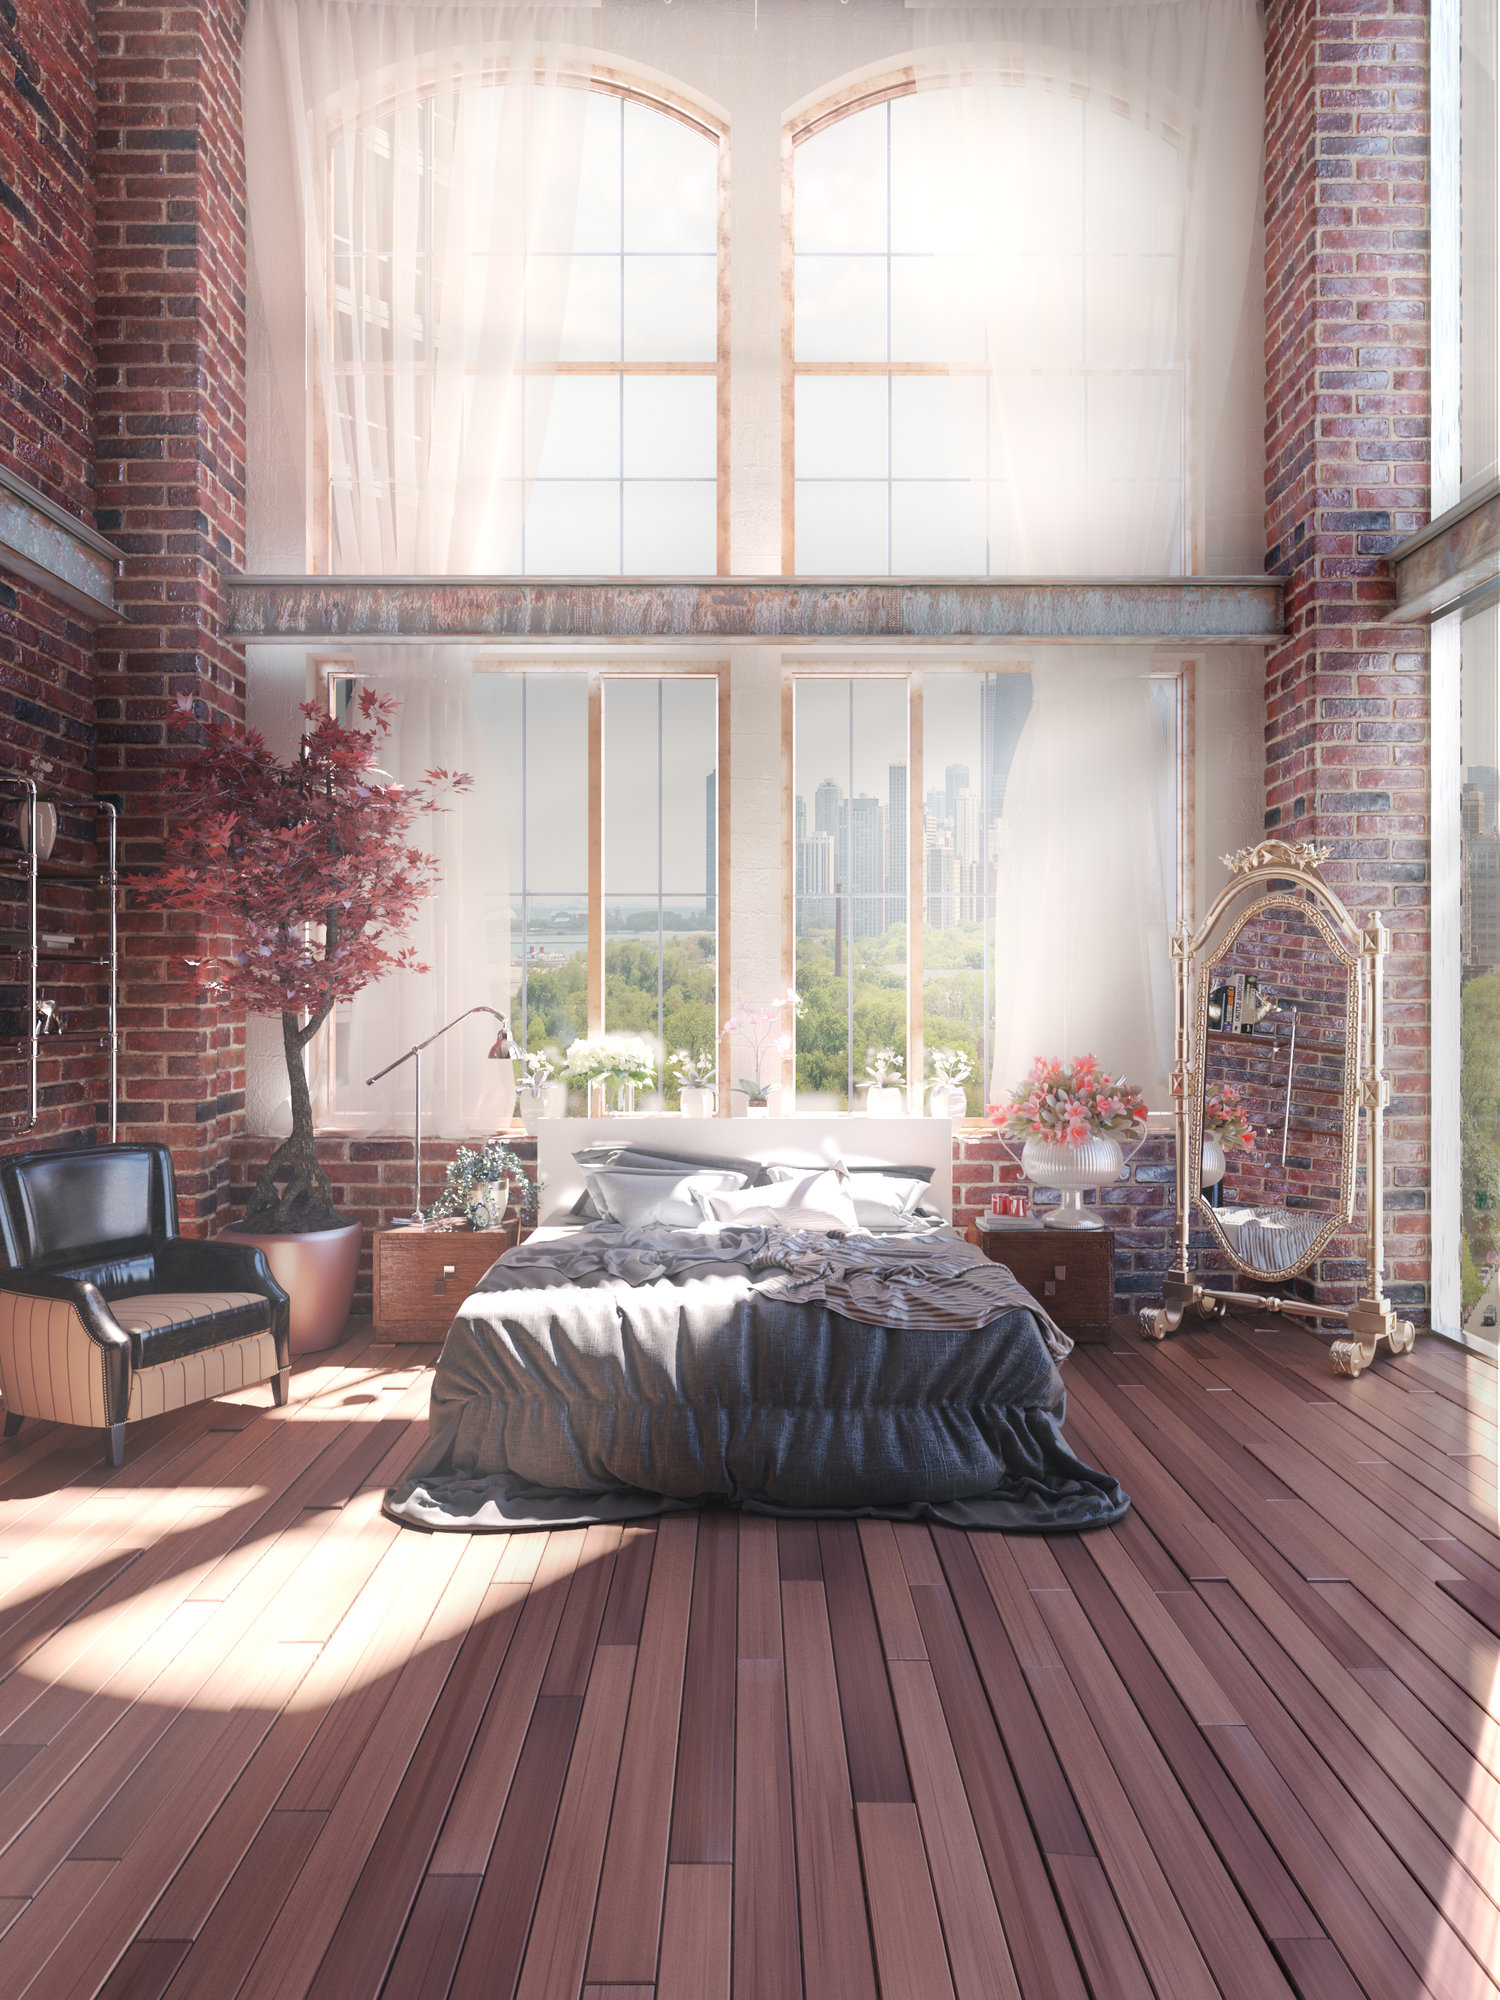 Loft Perth Perth Loft Ronen Bekerman 3d Architectural Visualization